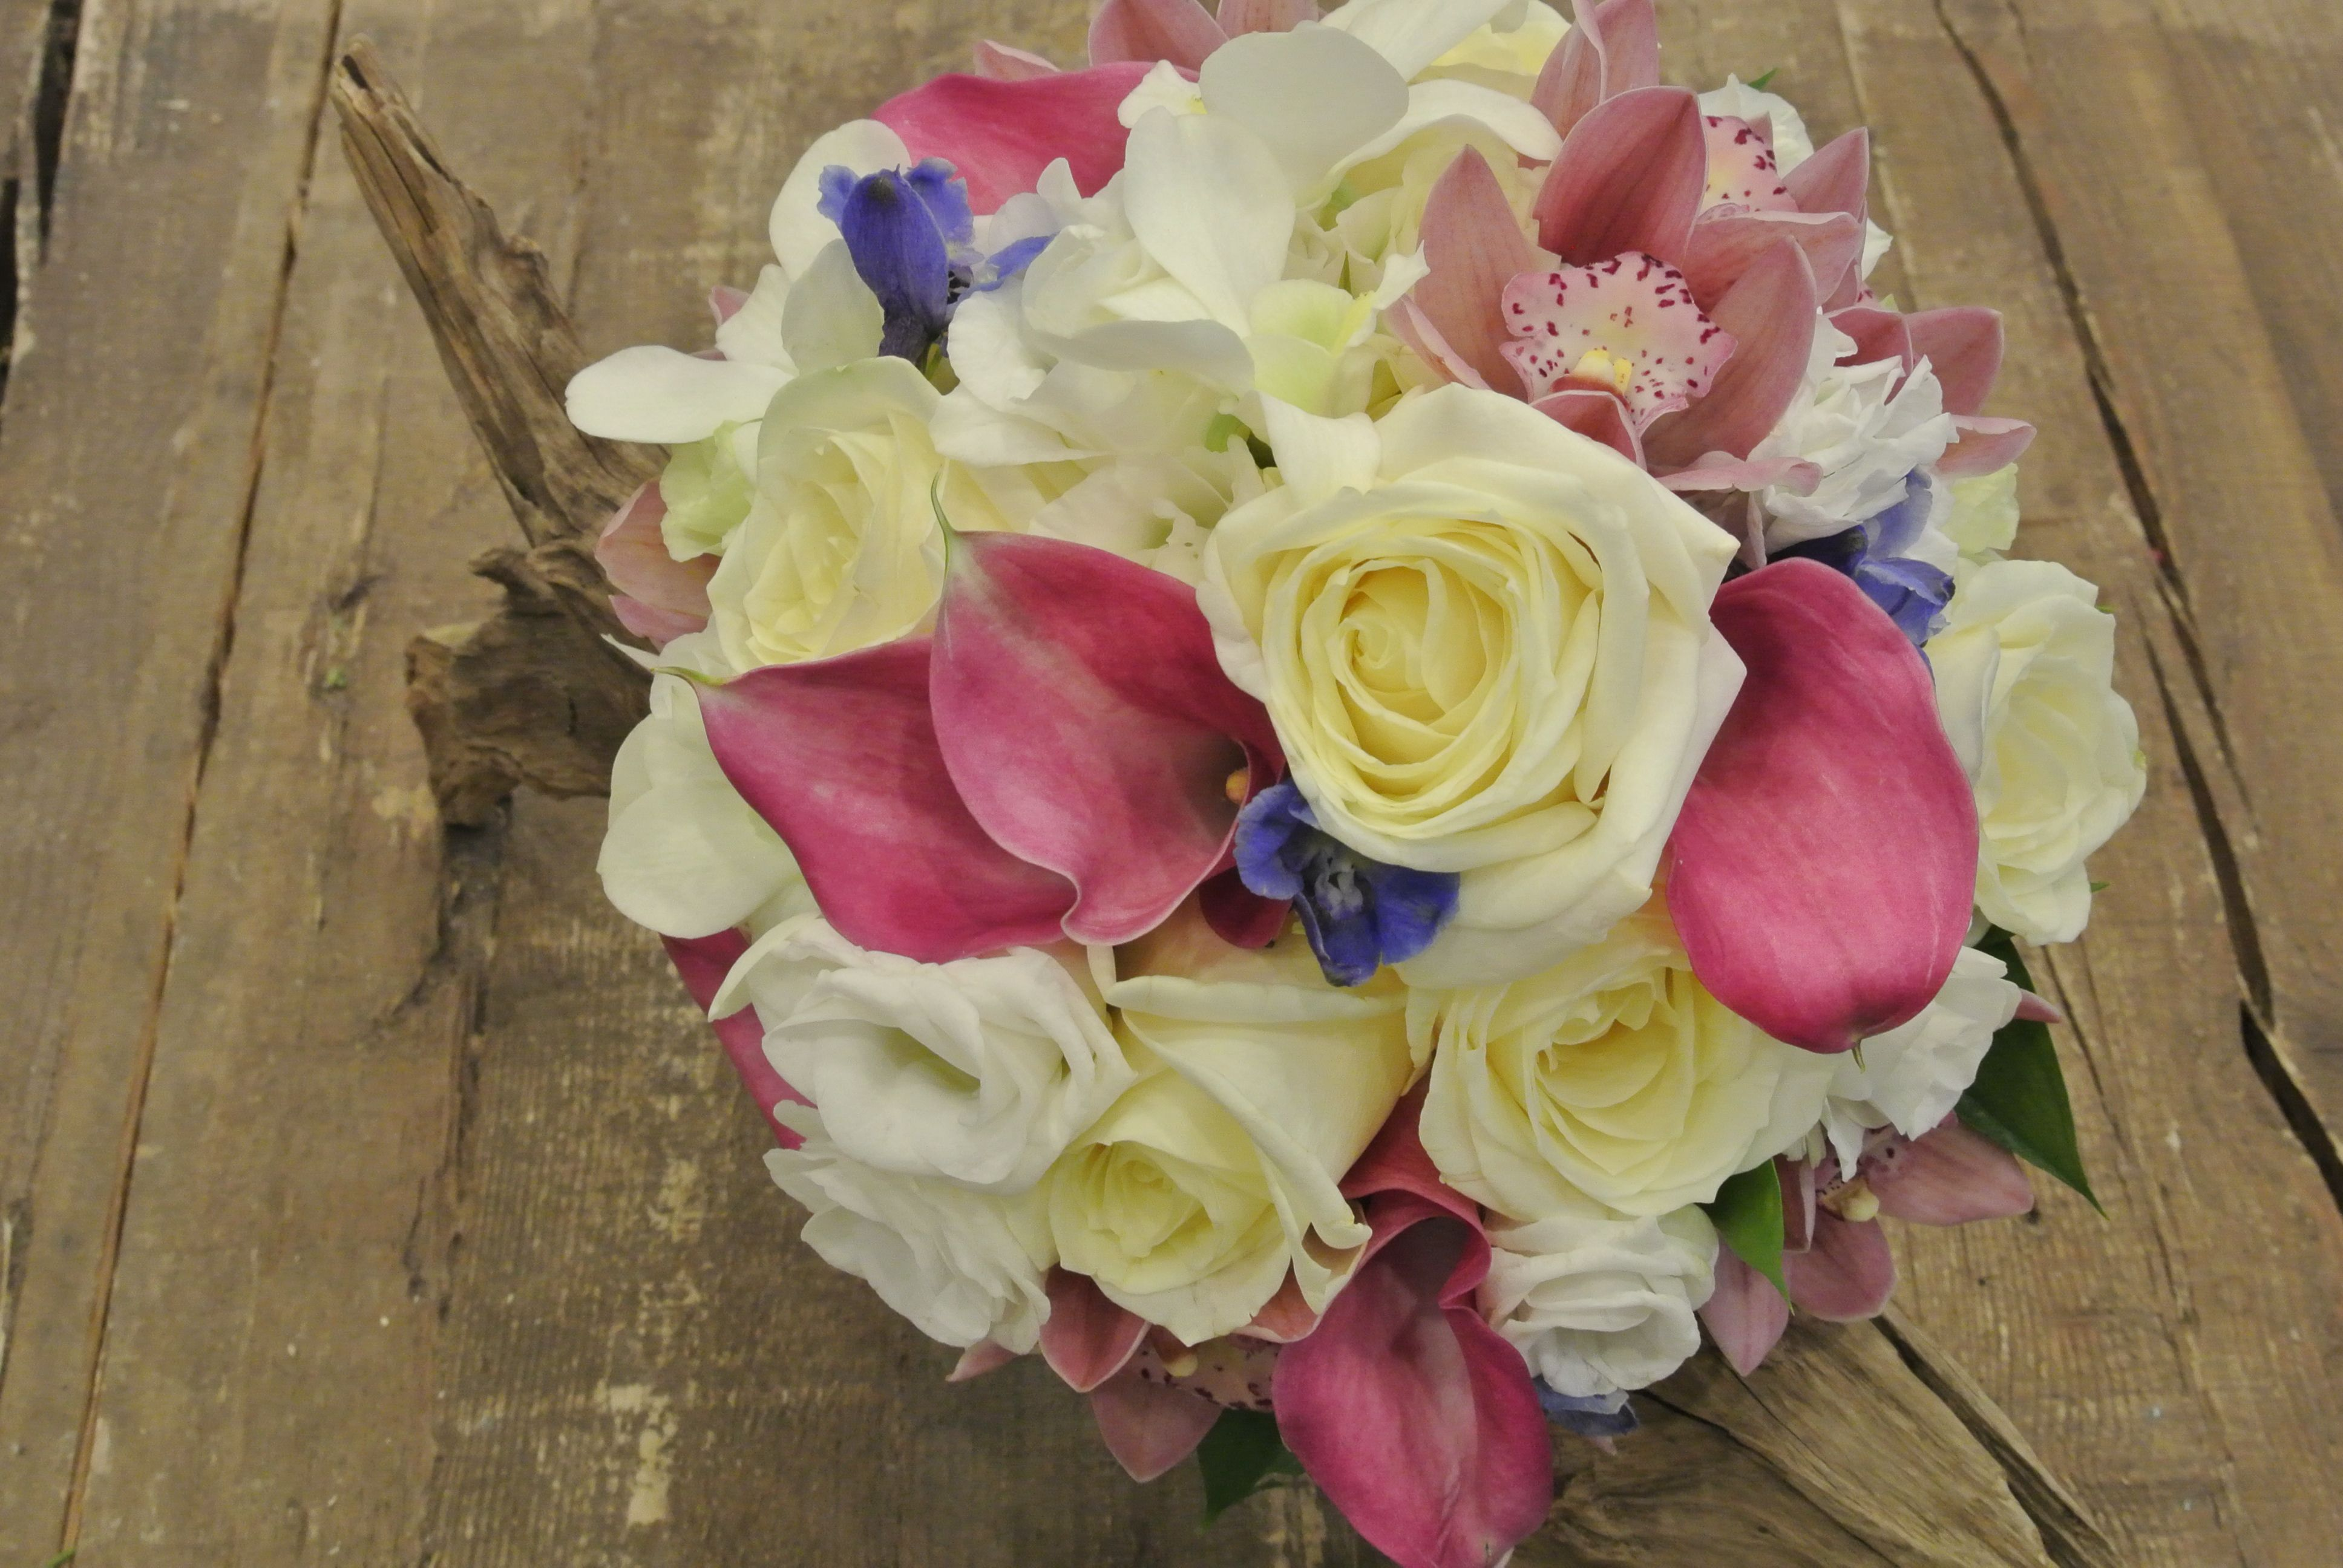 Bridal bouquet with ivory roses pink calla lilies lisianthus bridal bouquet with ivory roses pink calla lilies lisianthus cymbidium orchids and blue delphinium designed by forget me not flowers izmirmasajfo